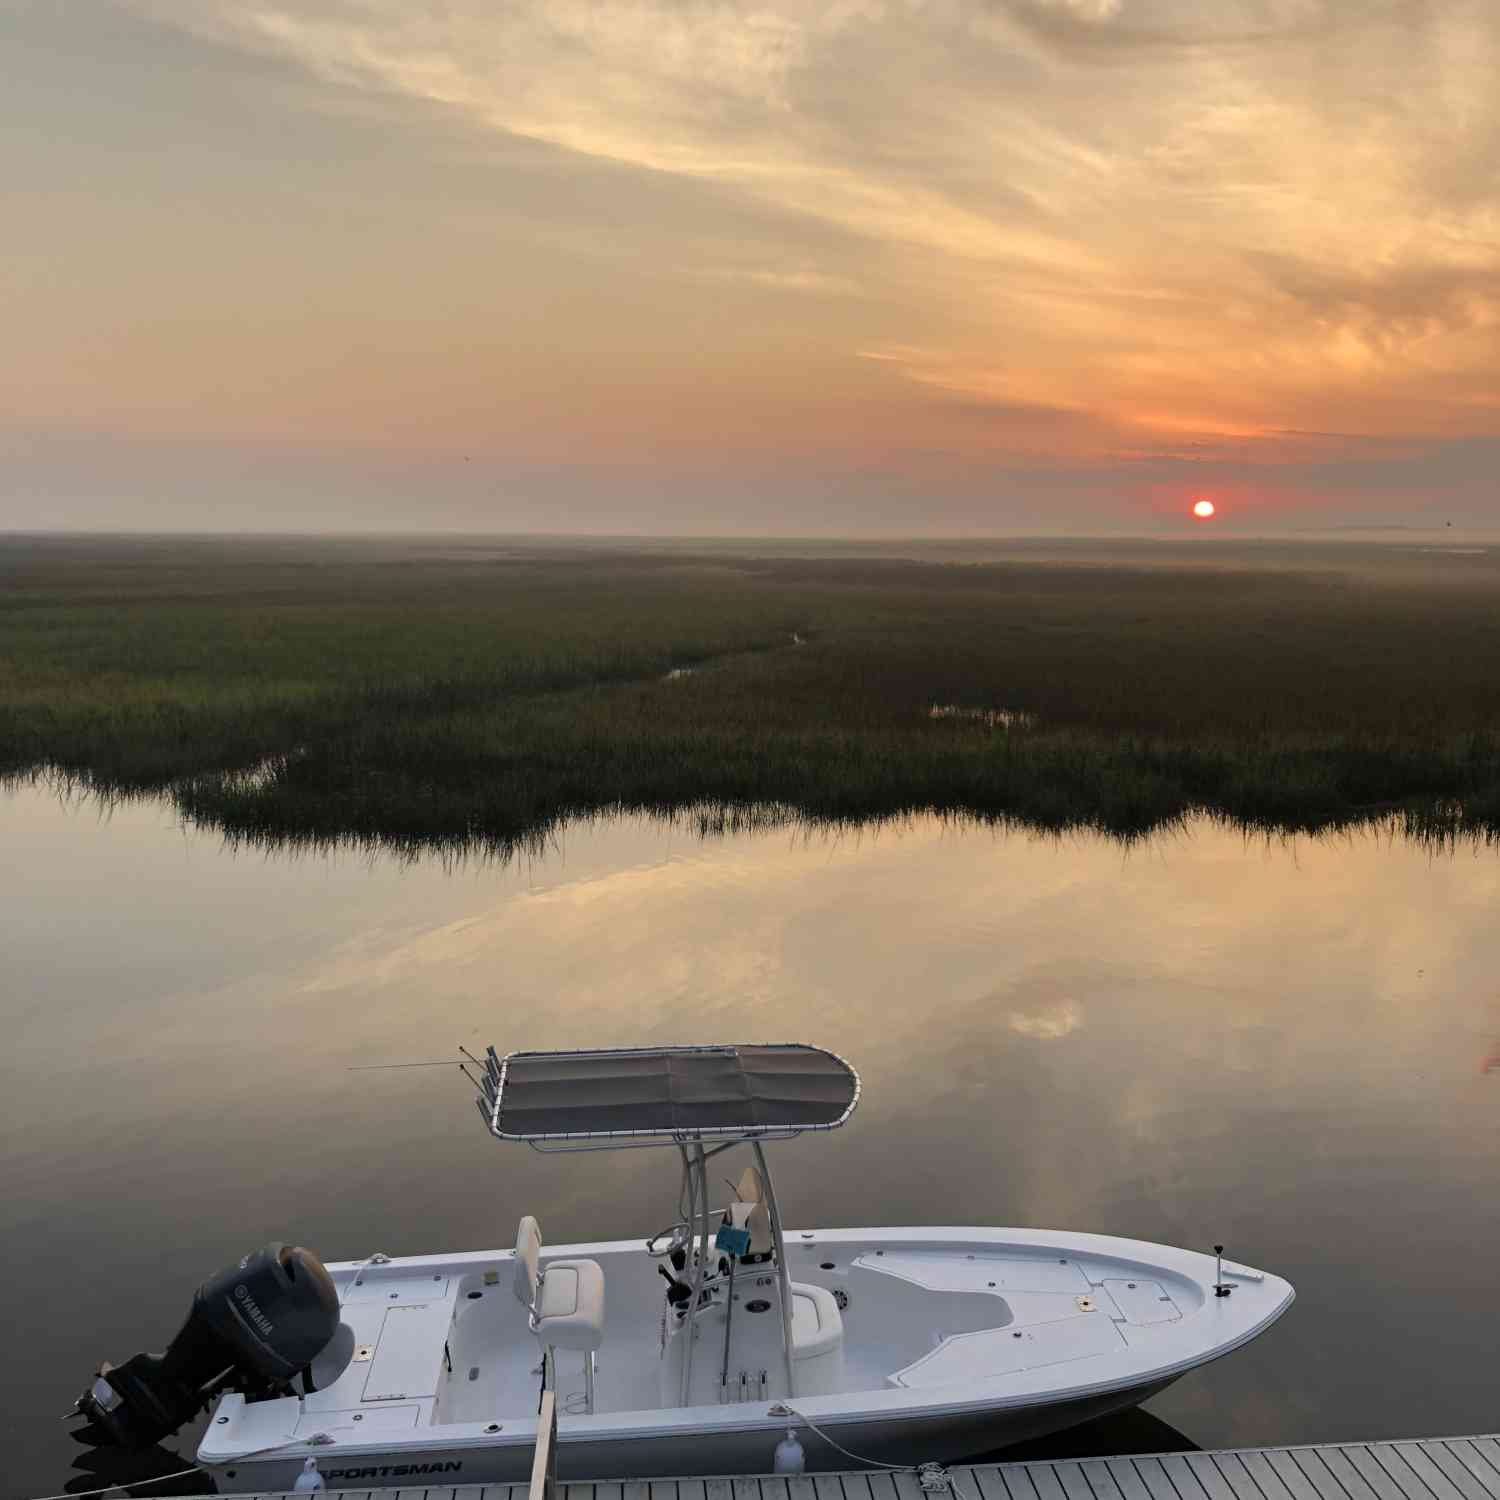 Title: Sunset - On board their Sportsman Masters 227 Bay Boat - Location: Hird Island Georgia. Participating in the Photo Contest #SportsmanMay2018